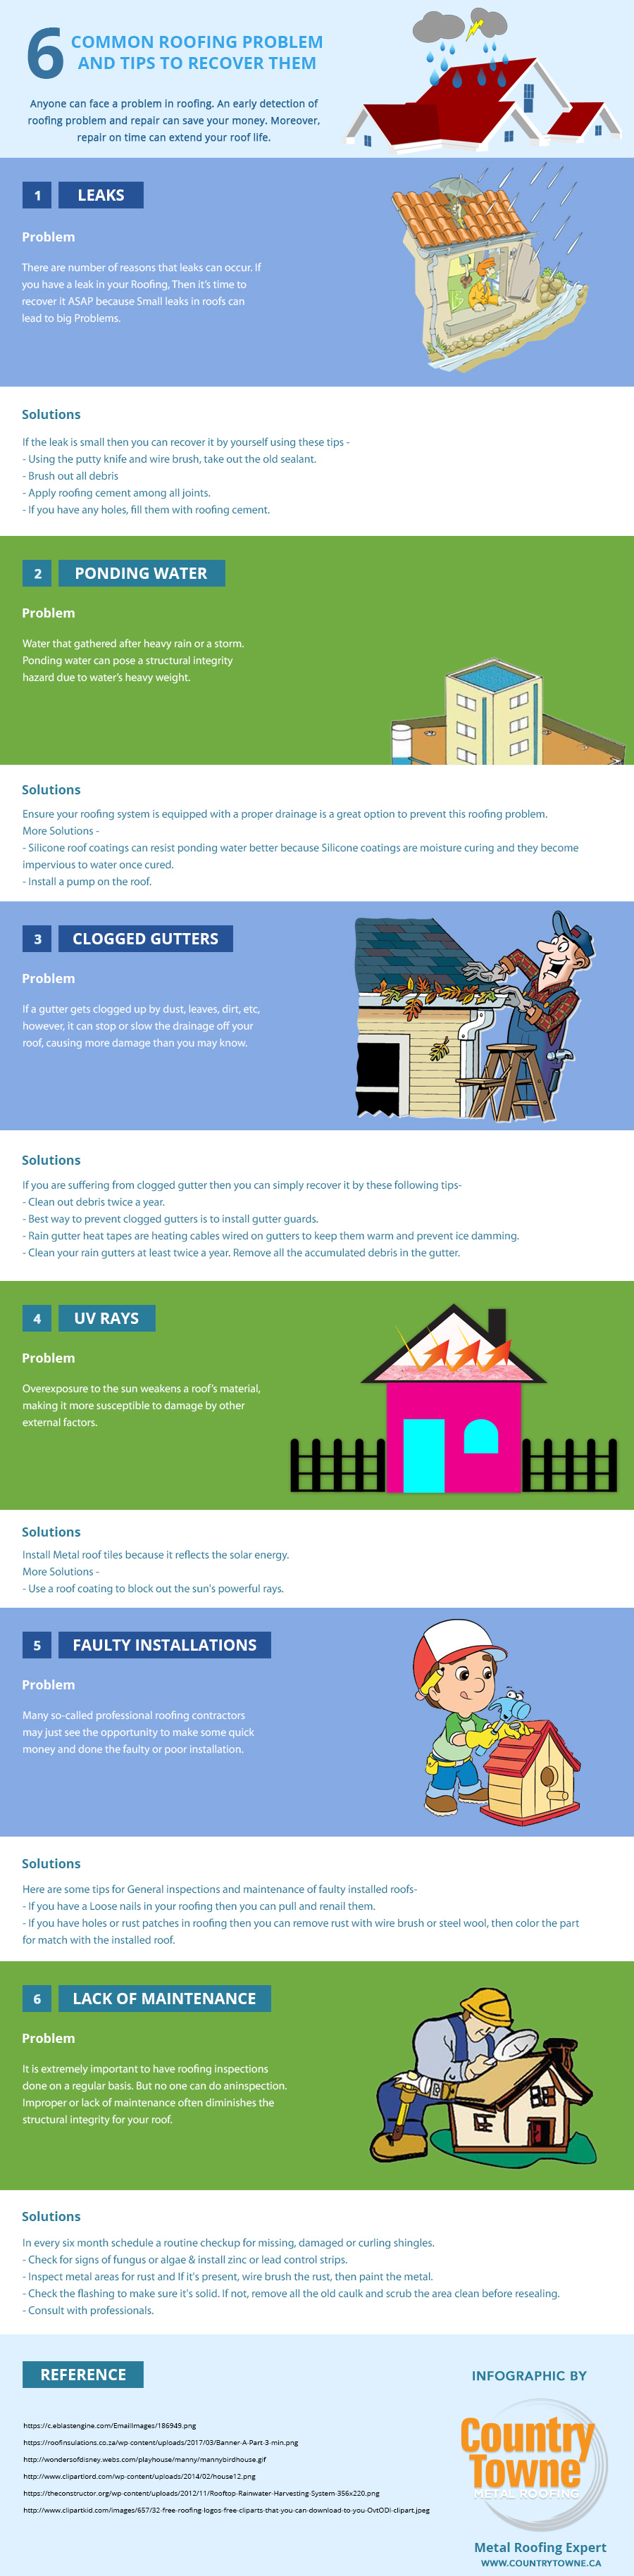 6 Common Roofing Problem and tips to Recover Them